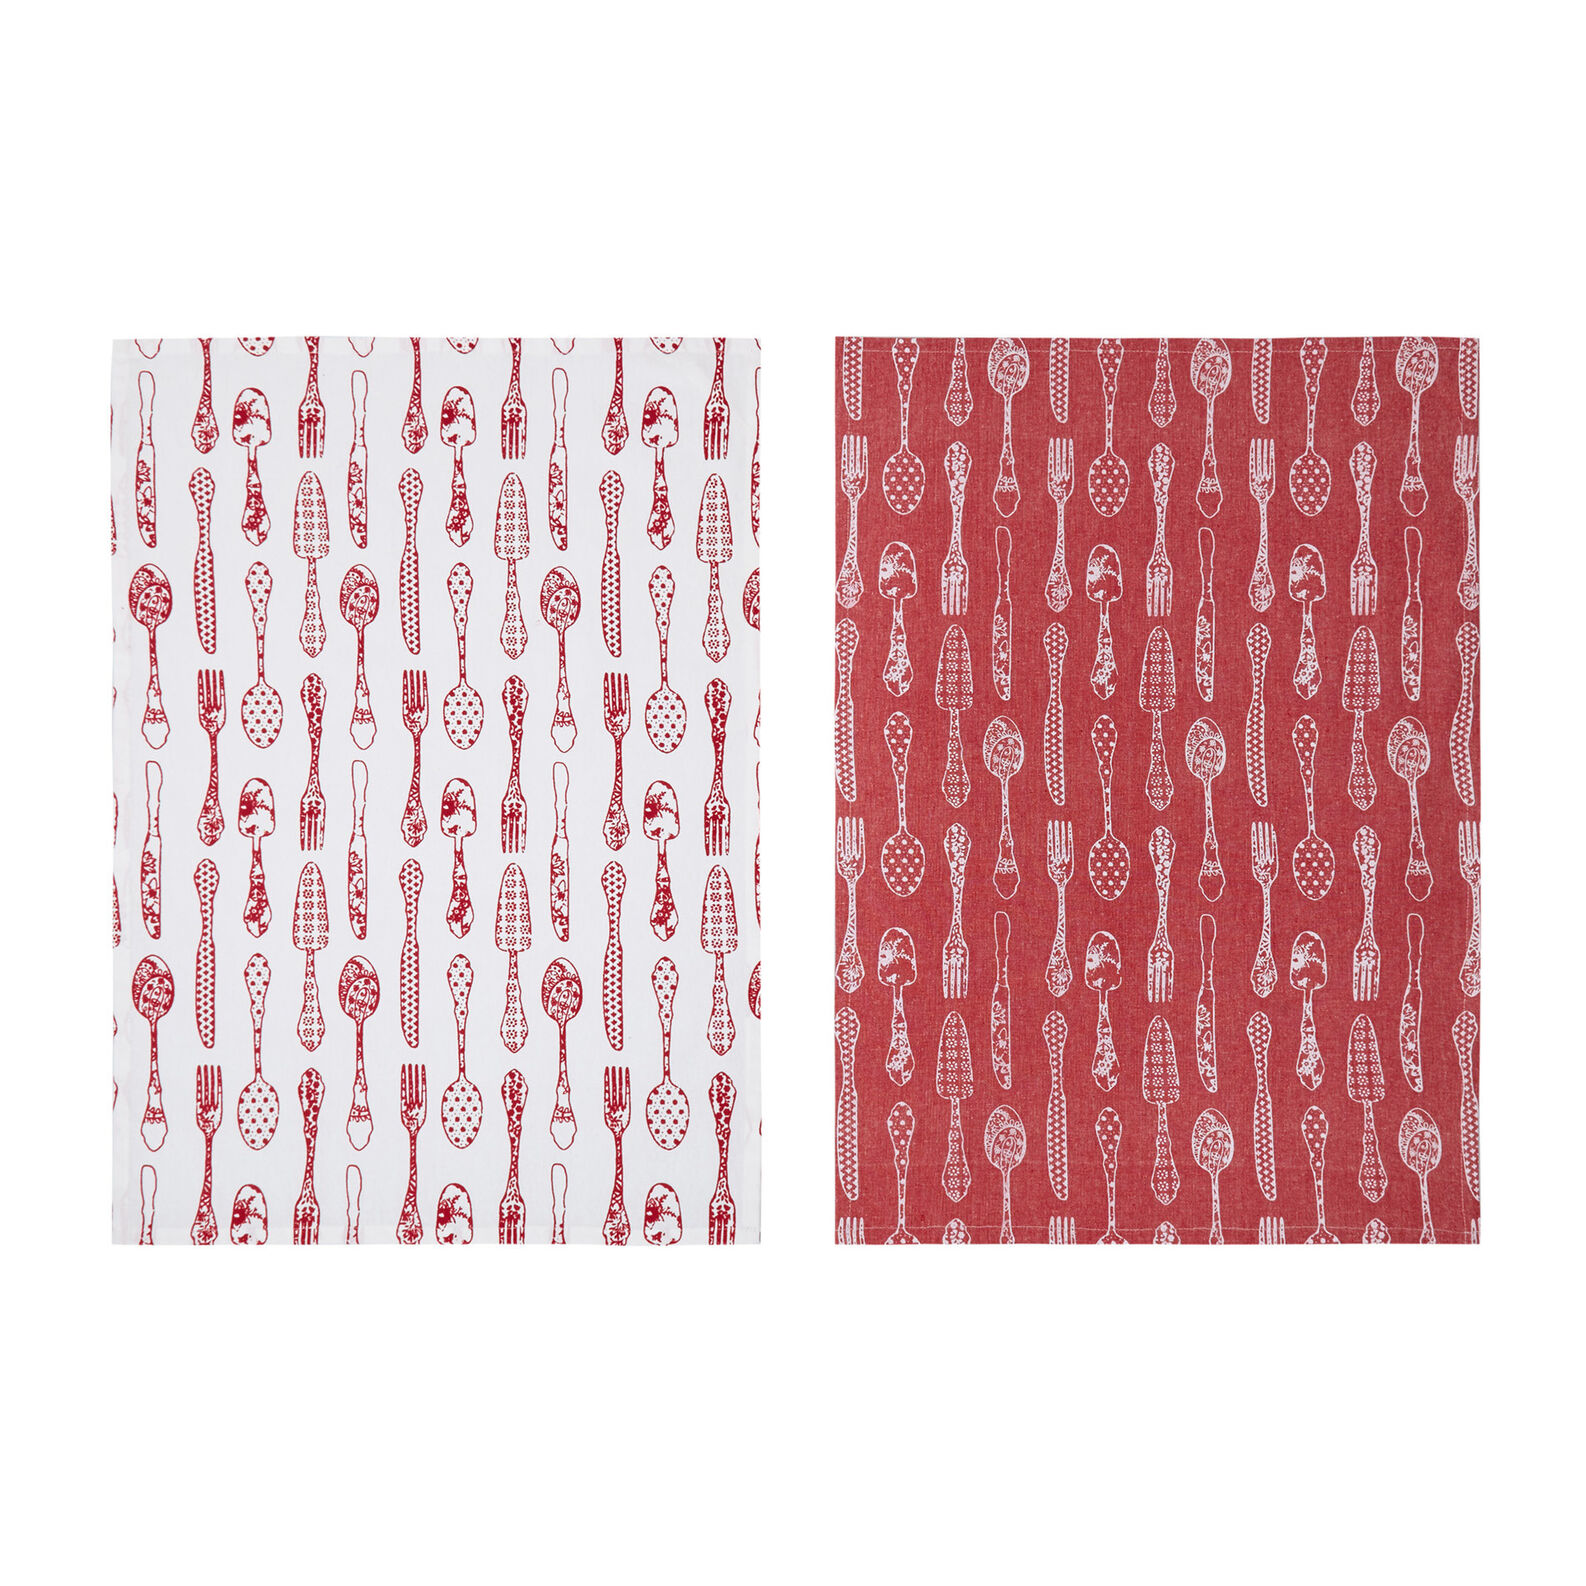 Set of 3 tea towels in 100% cotton with cutlery print